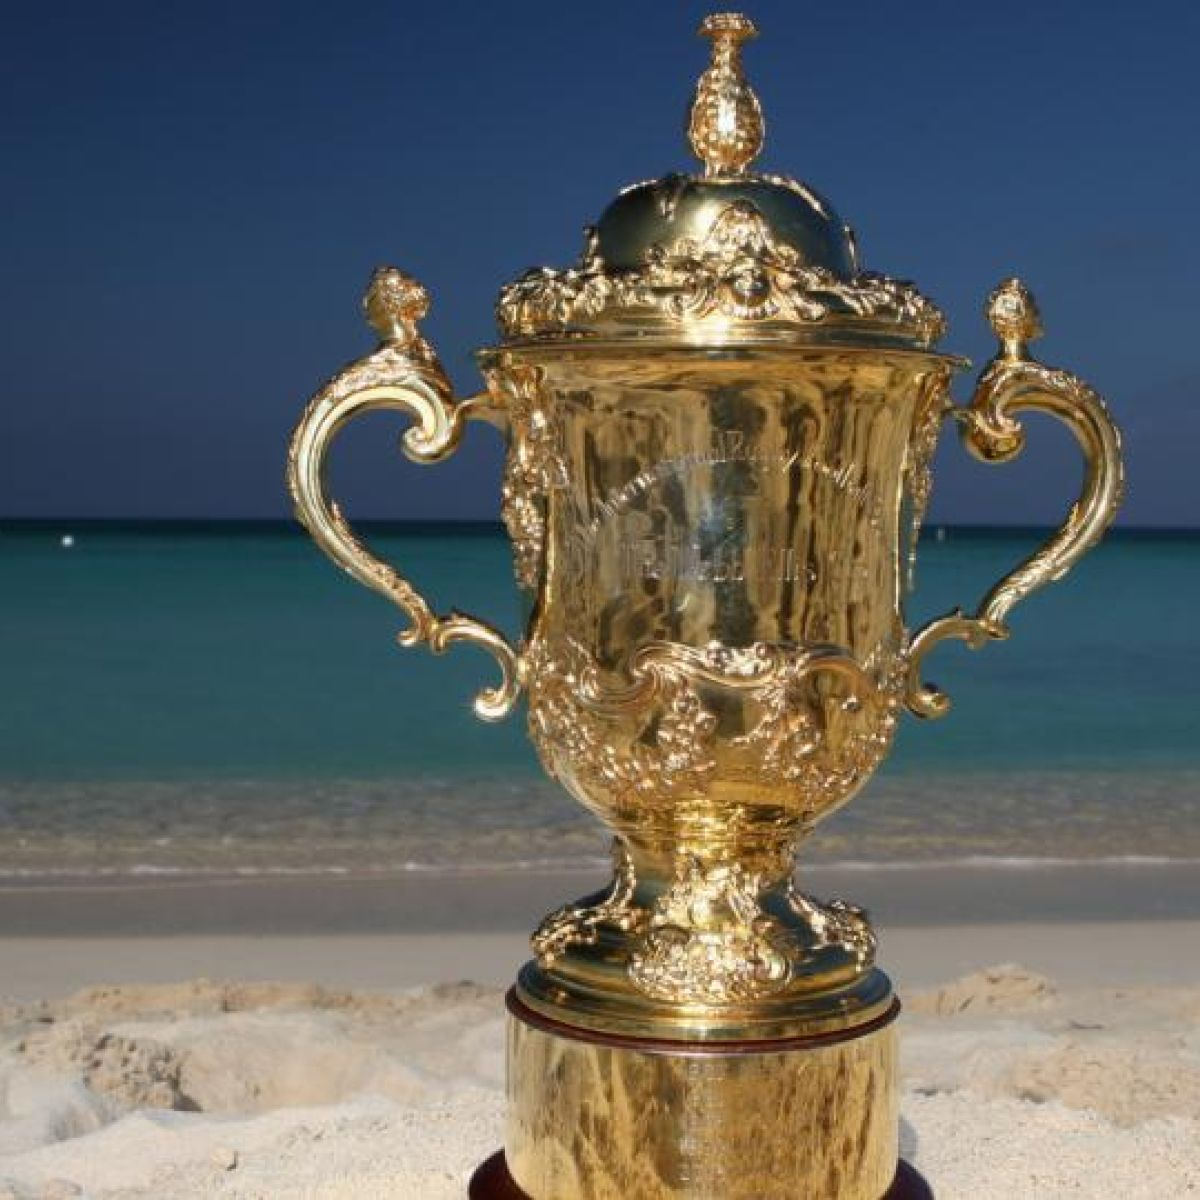 Usa Joins Ireland In Bidding For 2023 Rugby World Cup